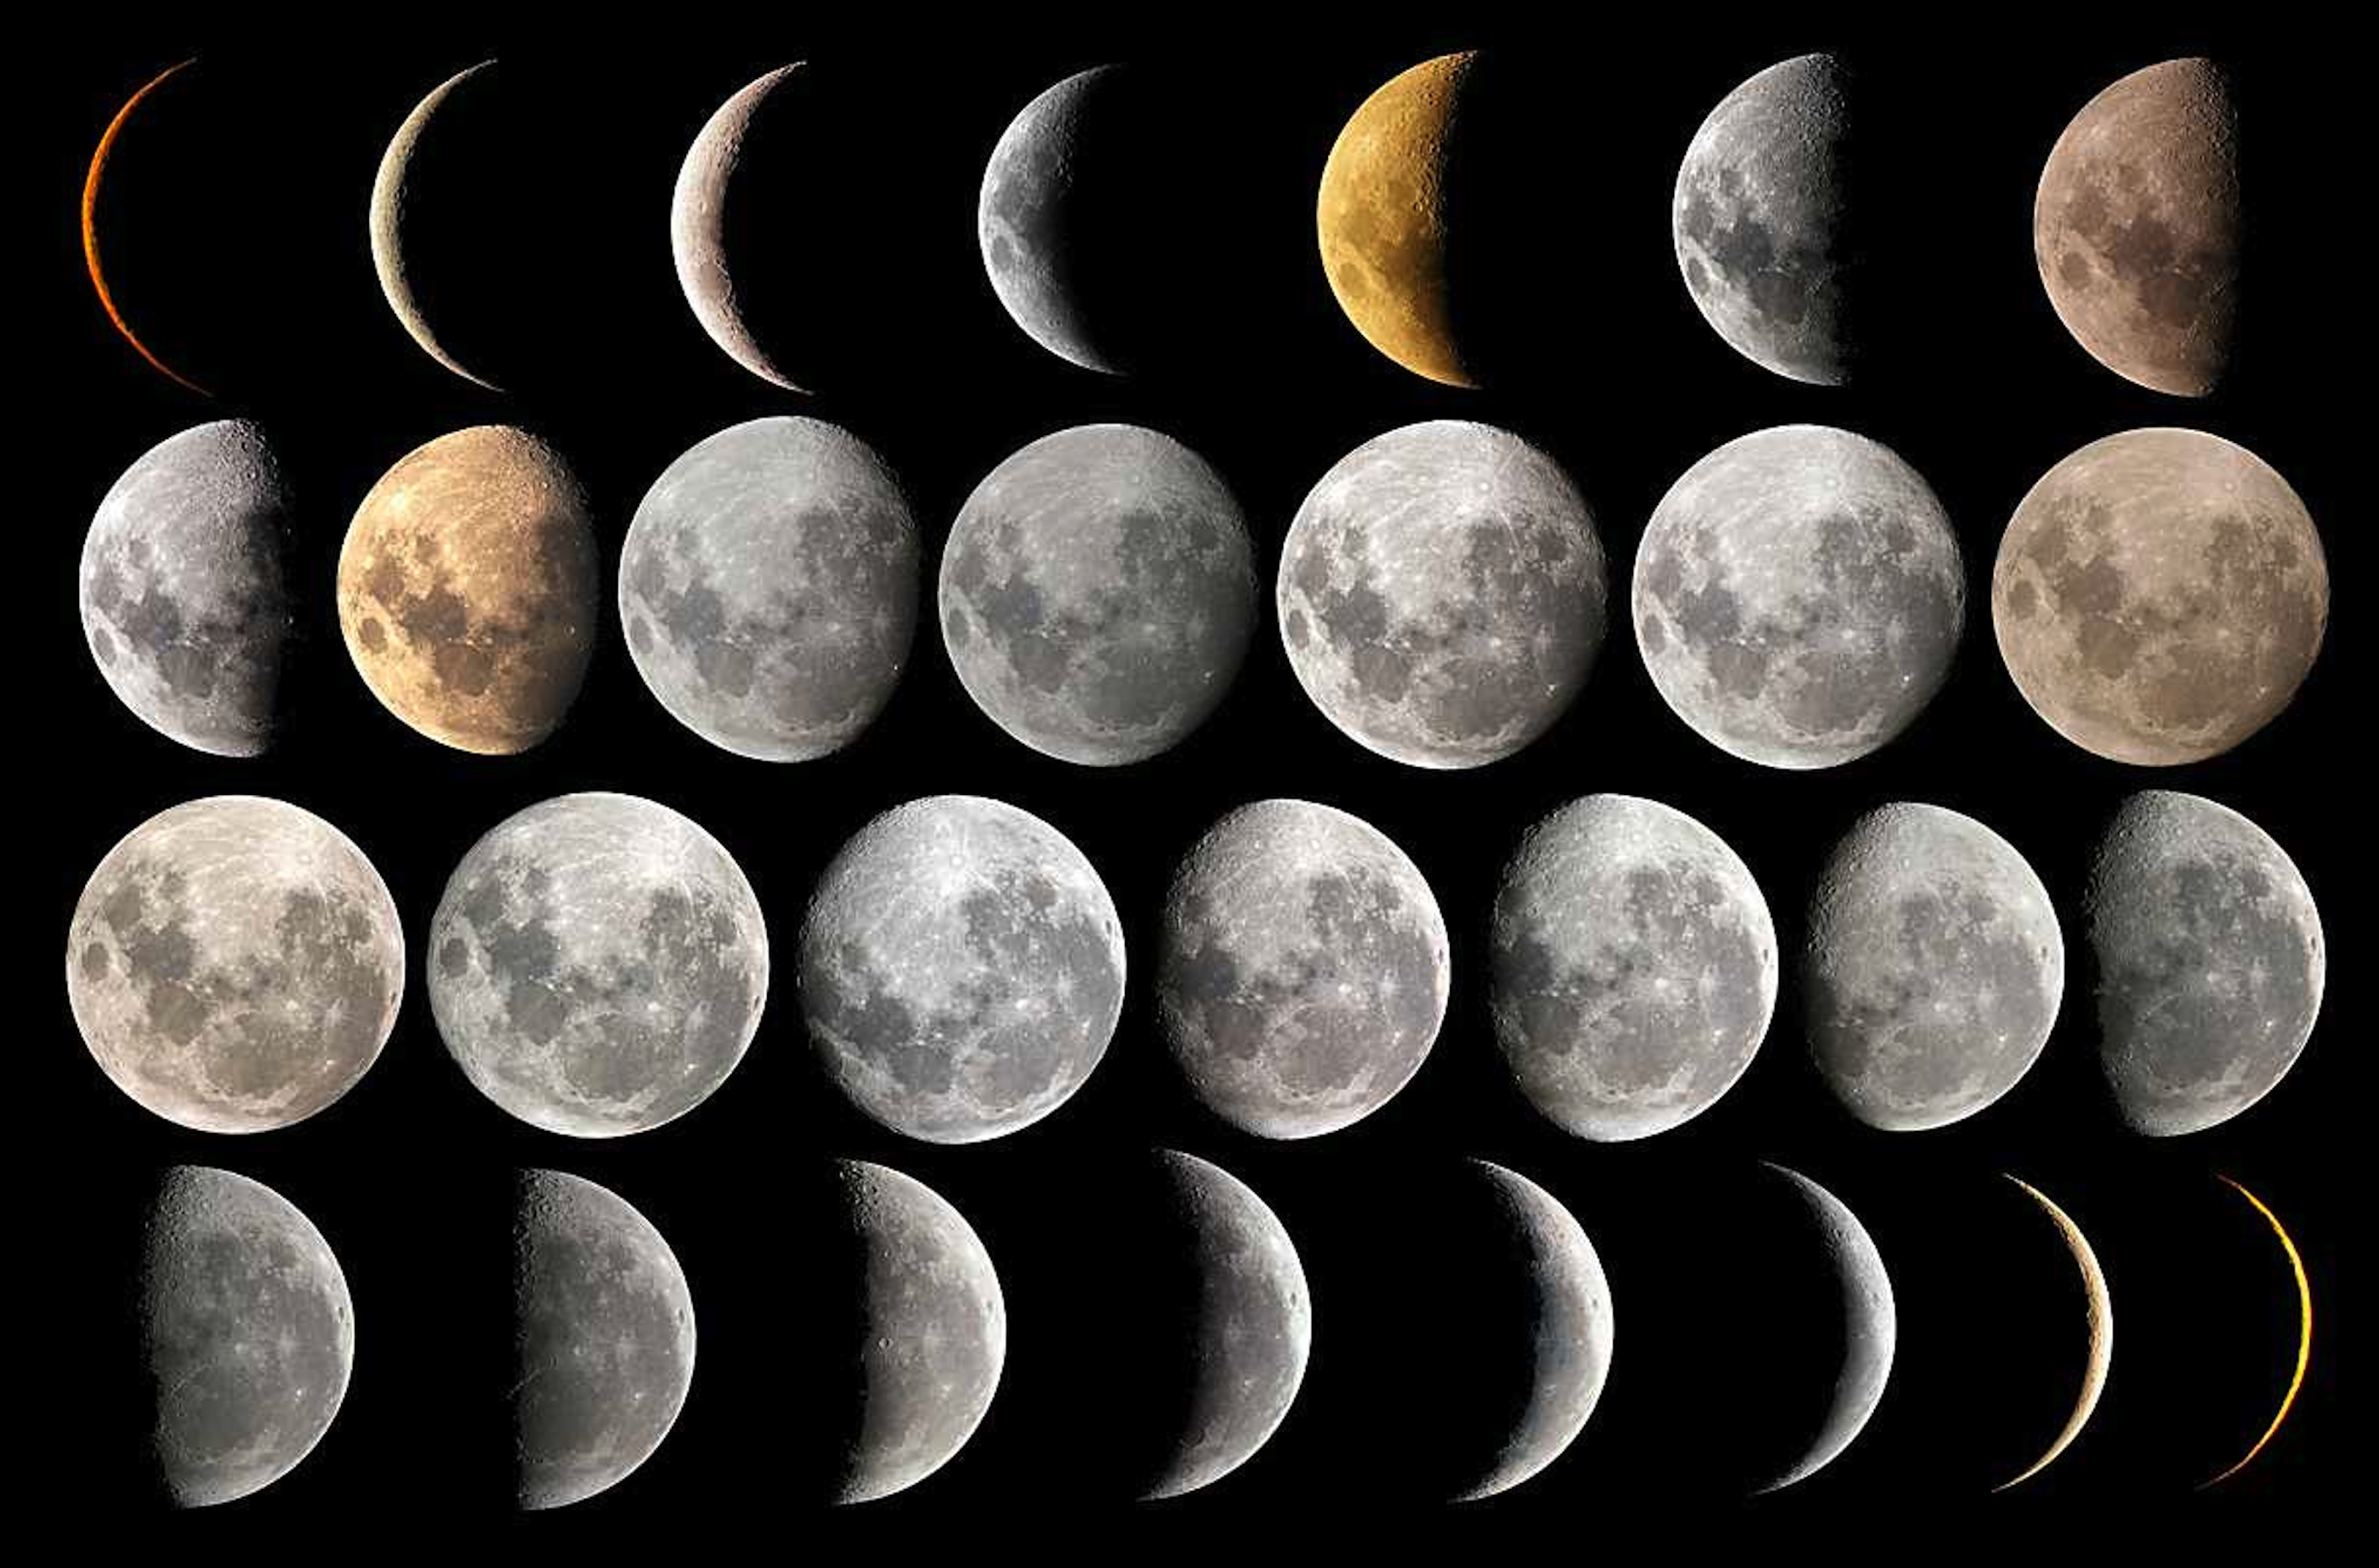 Lunar clipart phase the moon Moon Cliparts Zone Moon Cliparts